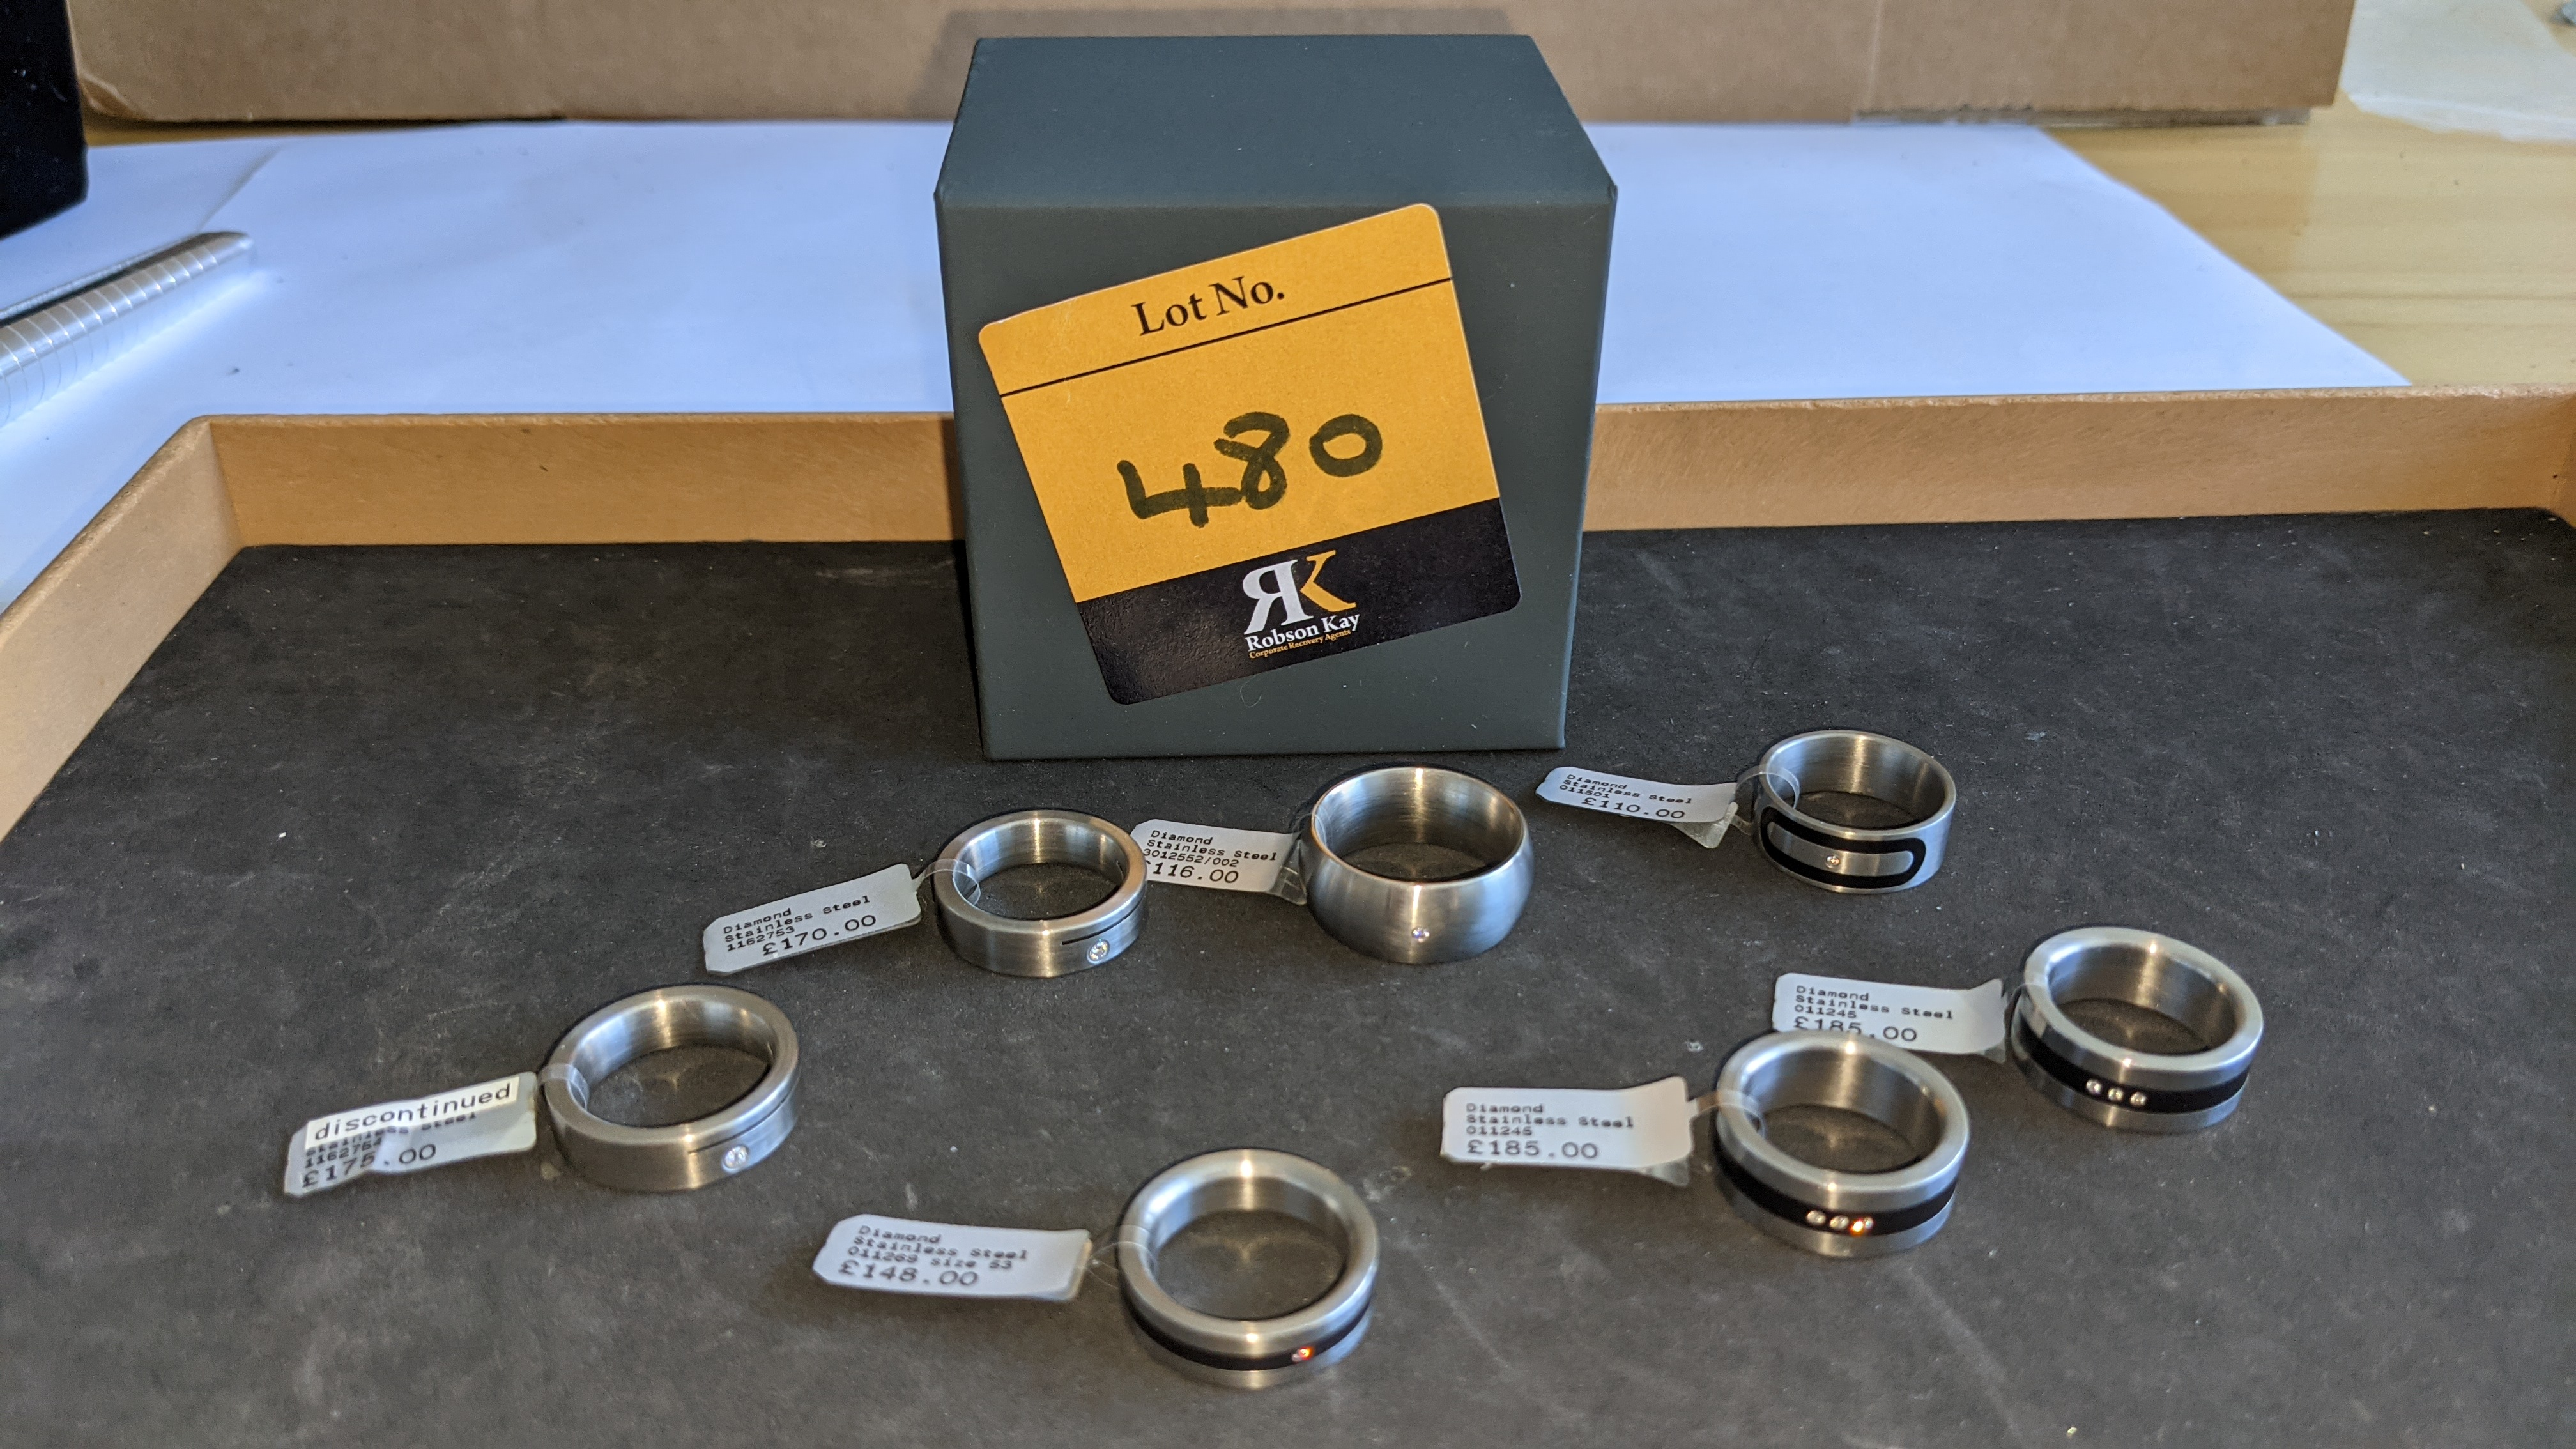 7 off assorted stainless steel & diamond rings. RRPs from £110 - £185. Total RRP £1,089 - Image 2 of 12